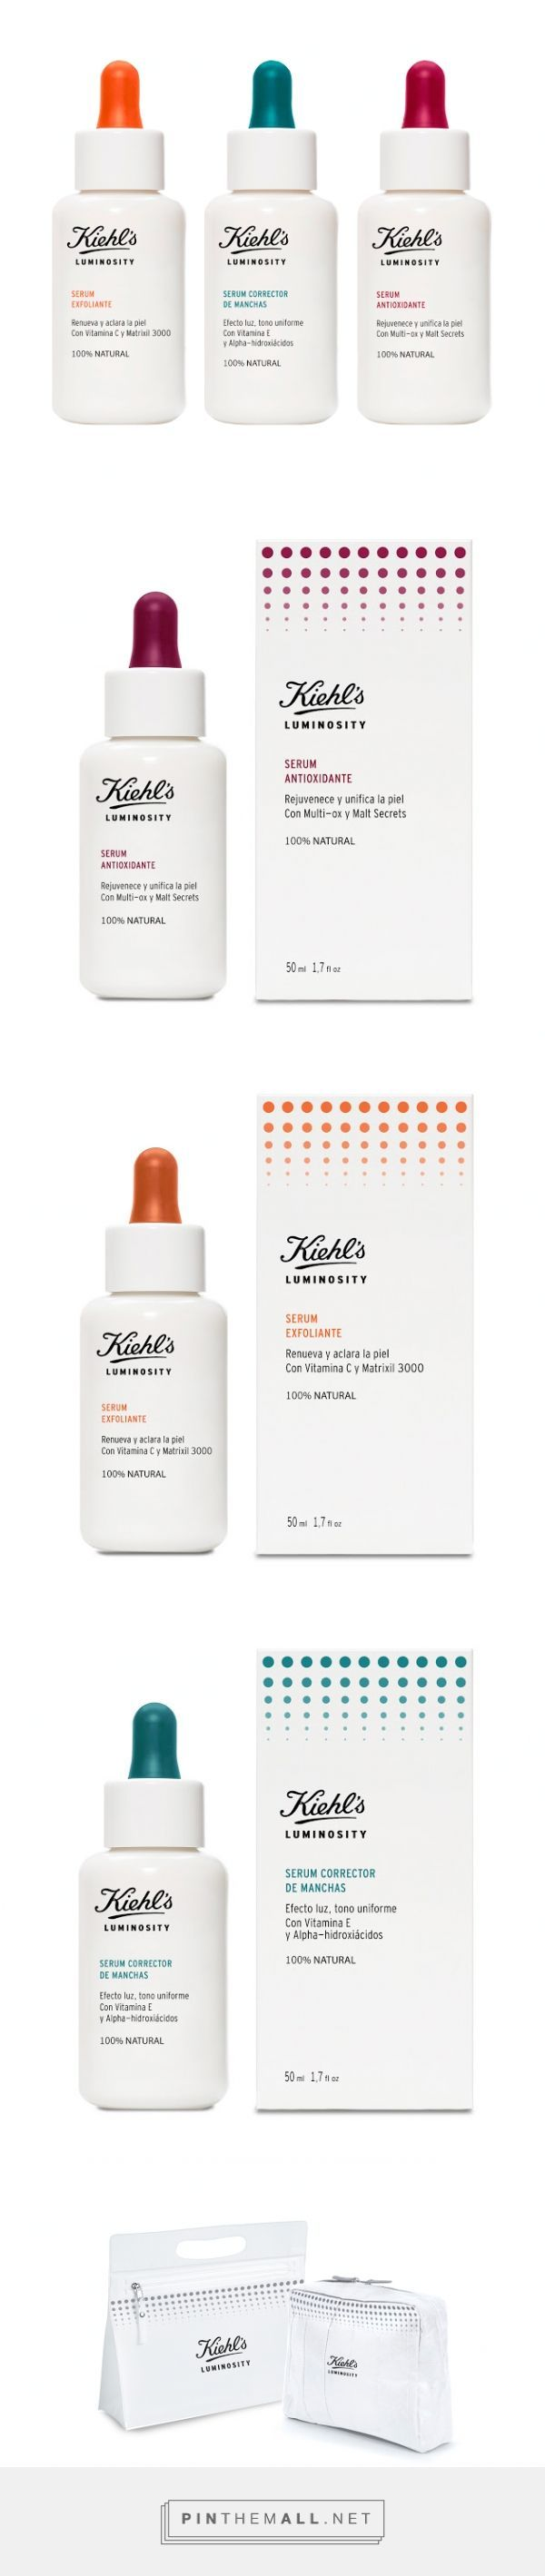 Simplicity is a powerful thing. Kiehl's Luminosity by Silvia Alberti and Corinne Carbonnel